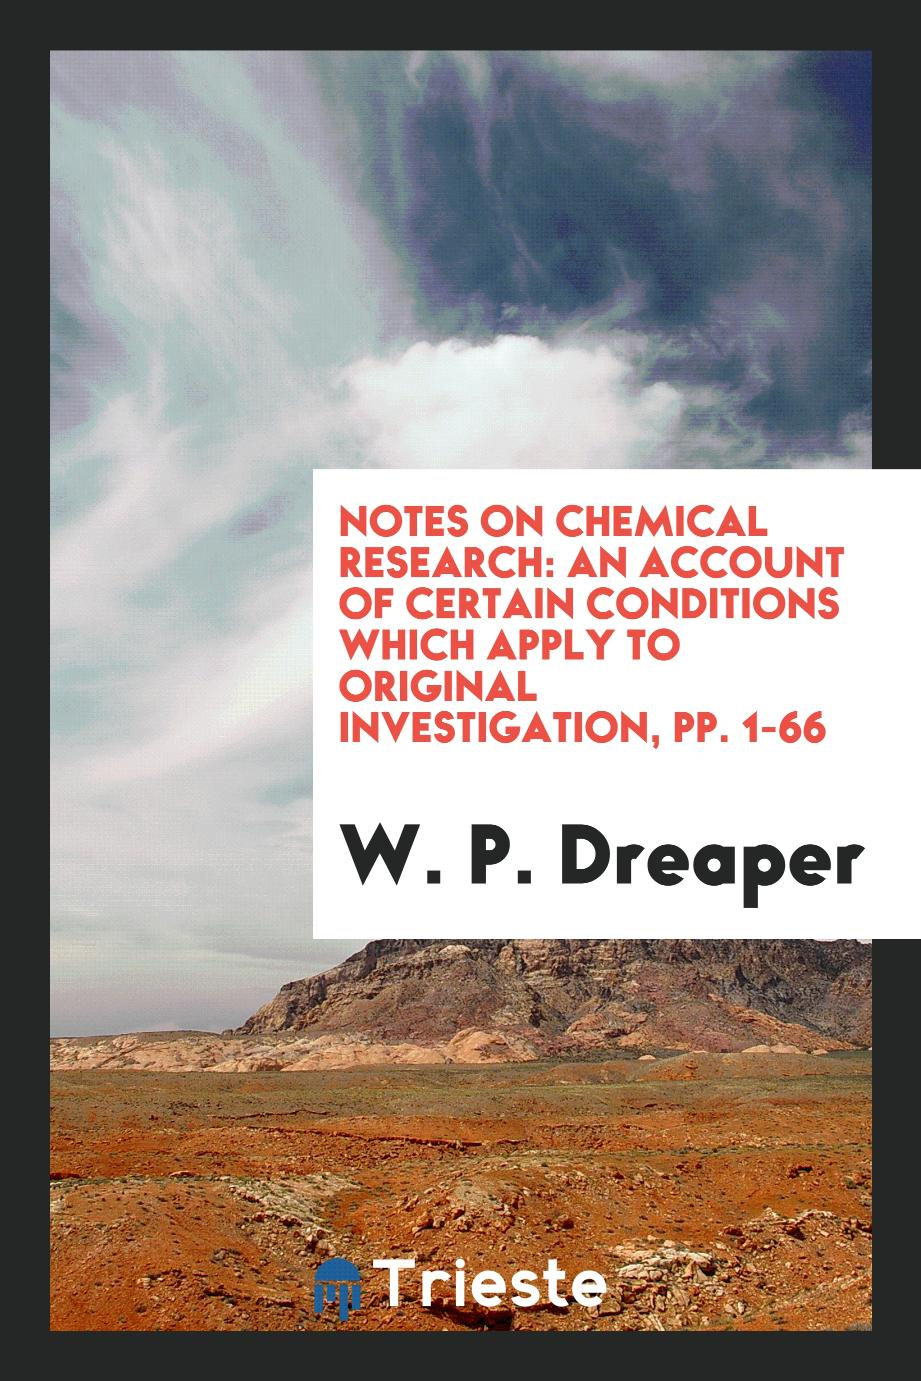 Notes on Chemical Research: An Account of Certain Conditions which Apply to original investigation, pp. 1-66